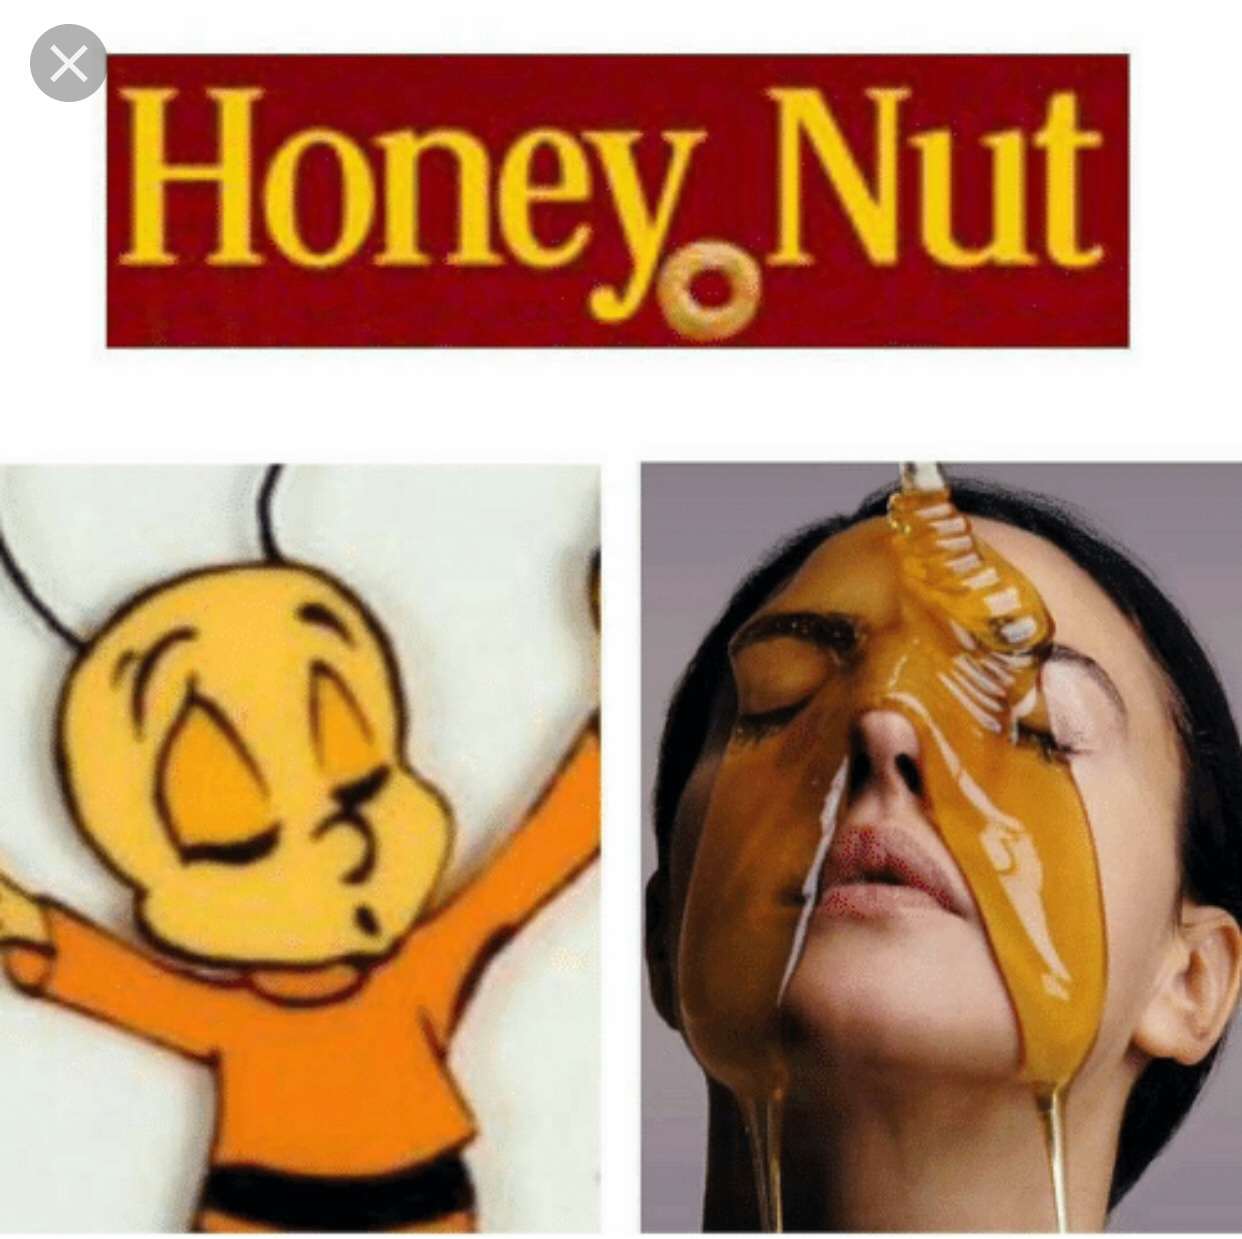 Honey Nut meme